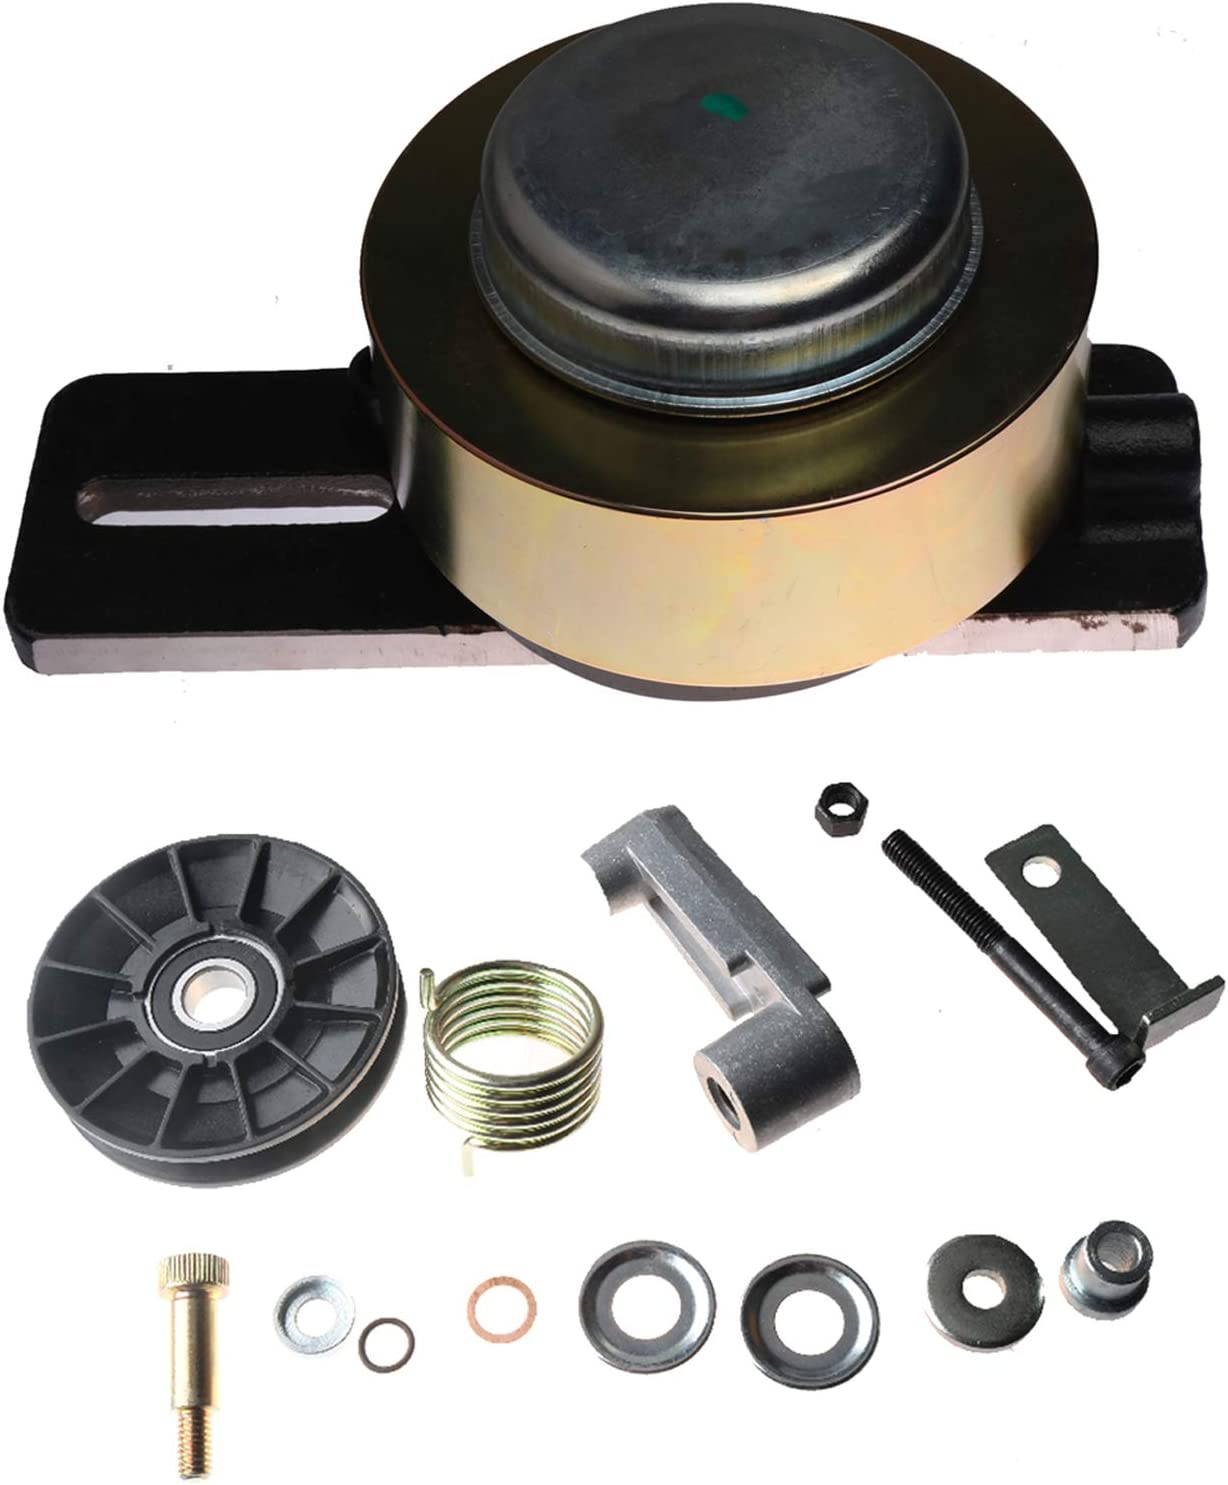 Friday Part Drive Belt Tensioner 6735884 & Cooling Fan Pulley Kits 6662997 for Bobcat 653 751 753 763 773 7753 S130 S150 S160 S175 S185 S205 T140 T180 T190